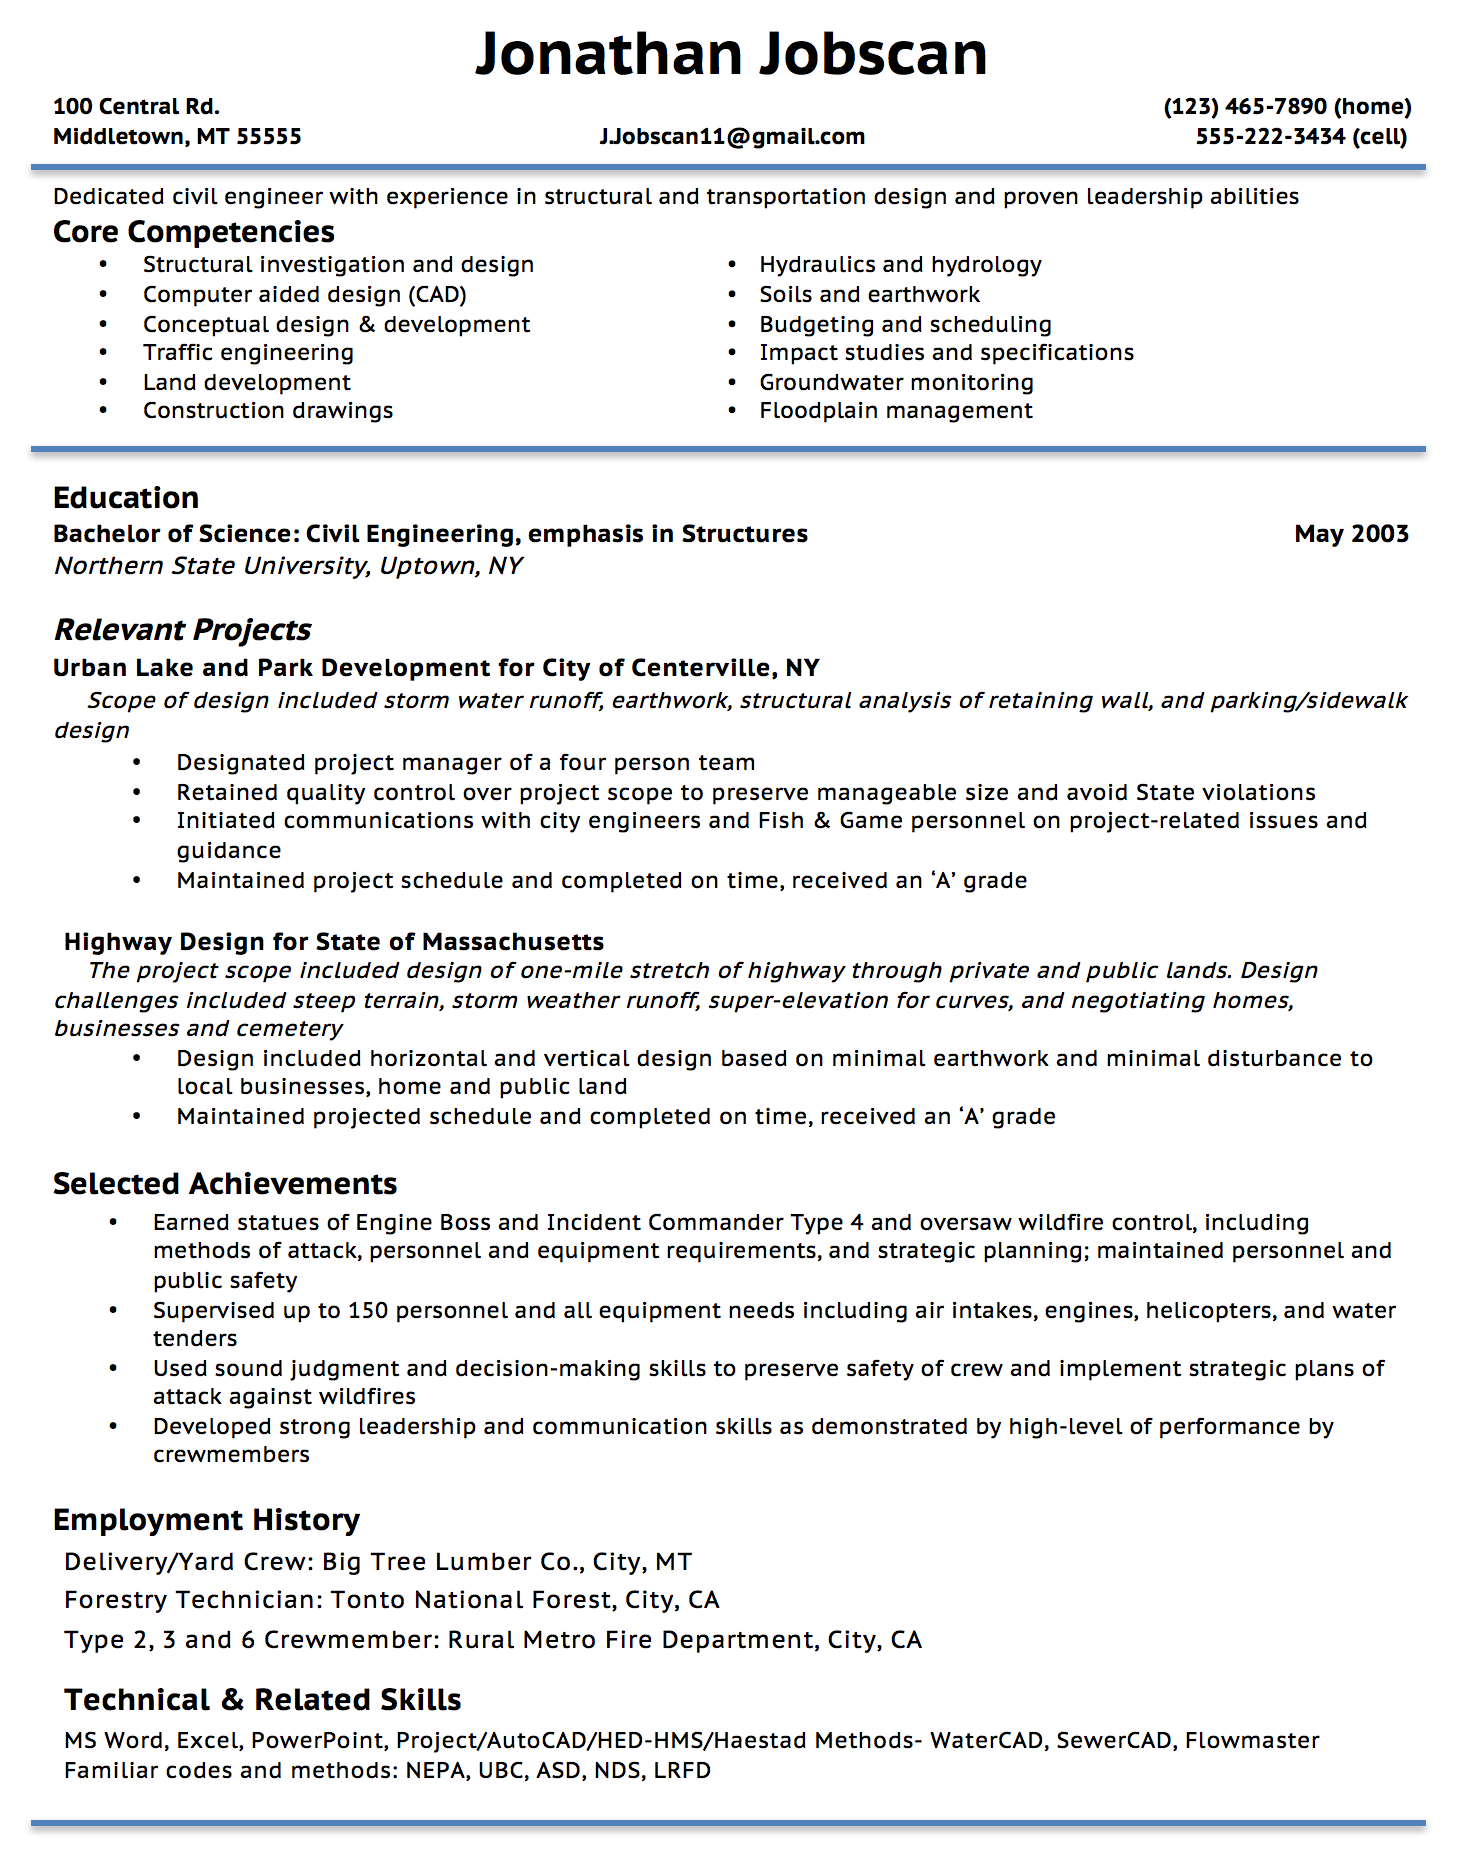 Opposenewapstandardsus  Marvelous Resume Writing Guide  Jobscan With Likable Example Of A Functional Resume Format With Charming Interesting Resume Also Restaurant Manager Duties For Resume In Addition Ta Resume And Professional Nurse Resume As Well As Cook Resume Objective Additionally Resume Writing Books From Jobscanco With Opposenewapstandardsus  Likable Resume Writing Guide  Jobscan With Charming Example Of A Functional Resume Format And Marvelous Interesting Resume Also Restaurant Manager Duties For Resume In Addition Ta Resume From Jobscanco